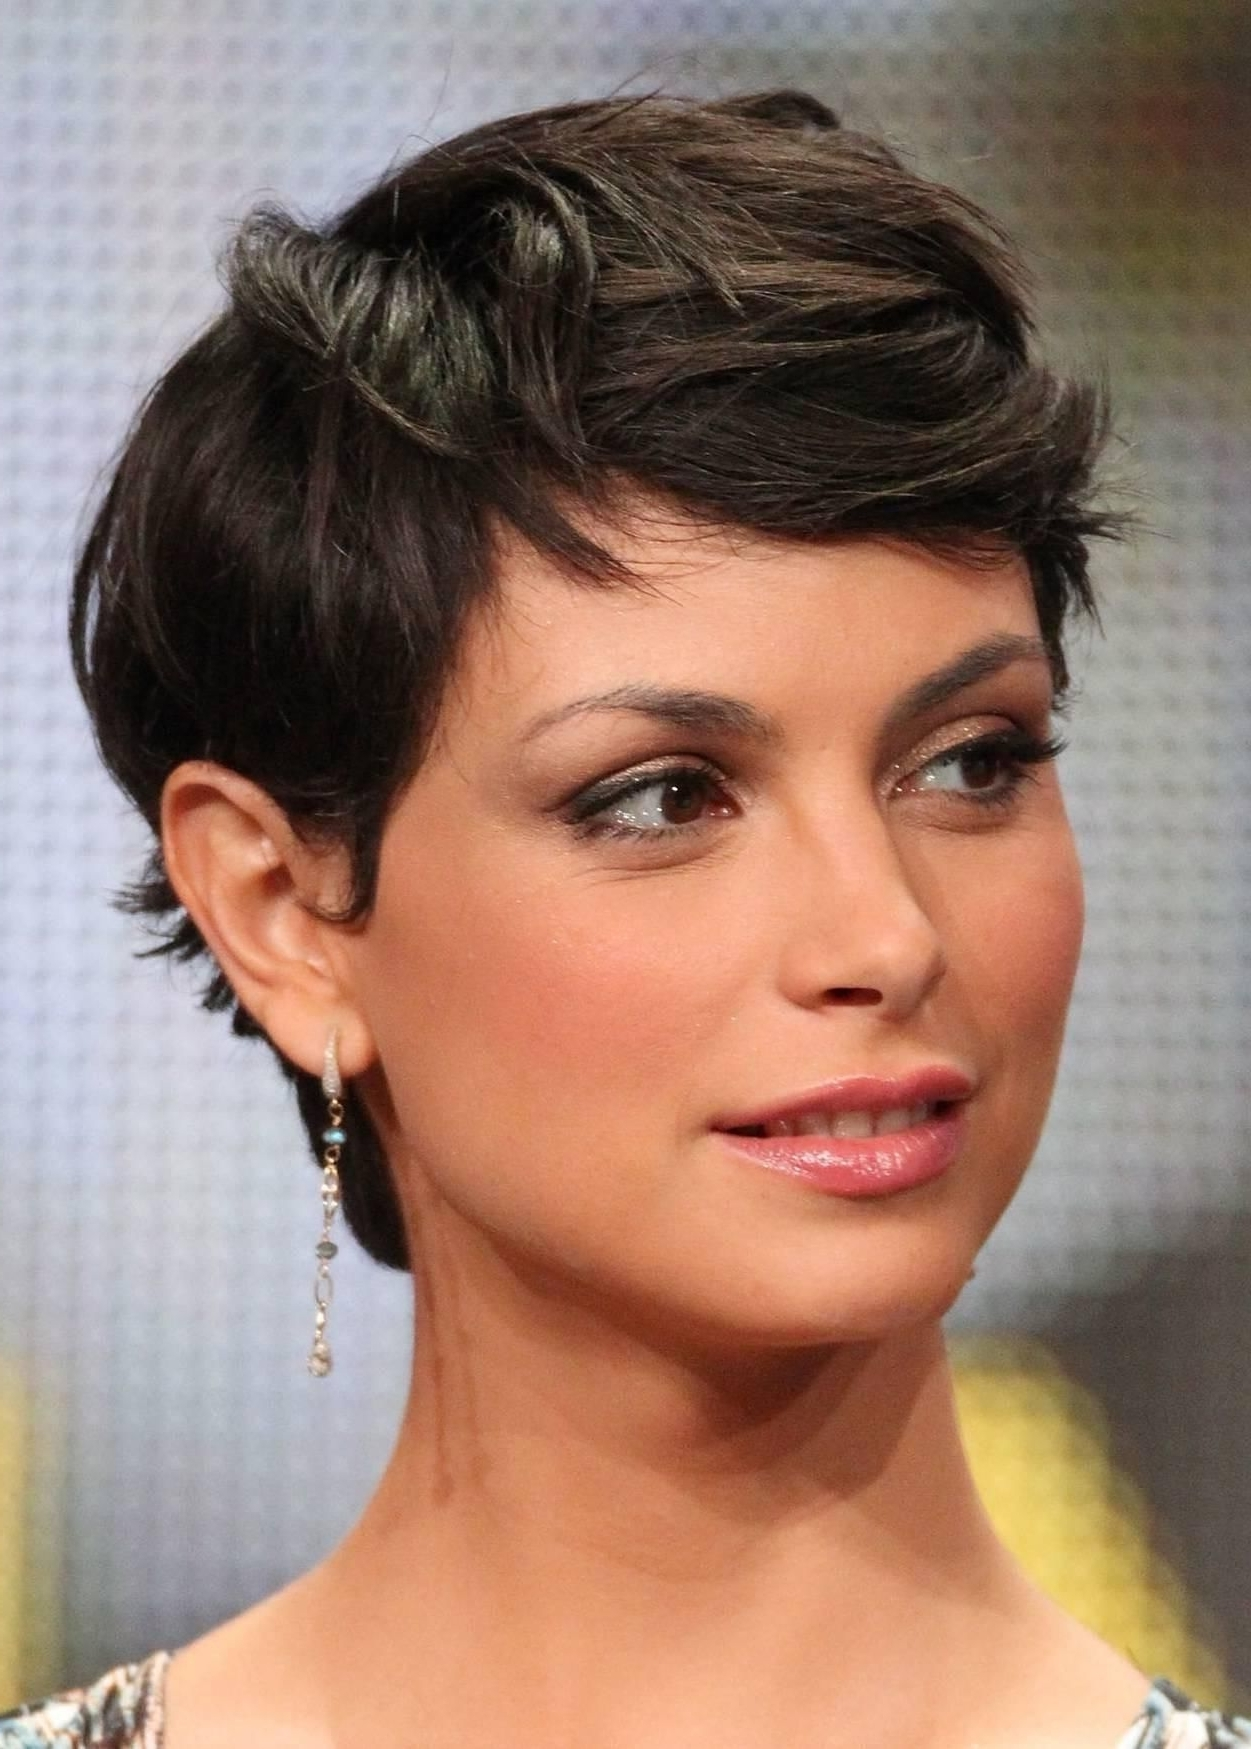 Best Pixie Haircuts For Your Face Shape   Wardrobelooks In Newest Pixie Hairstyles For Oblong Face (View 7 of 15)